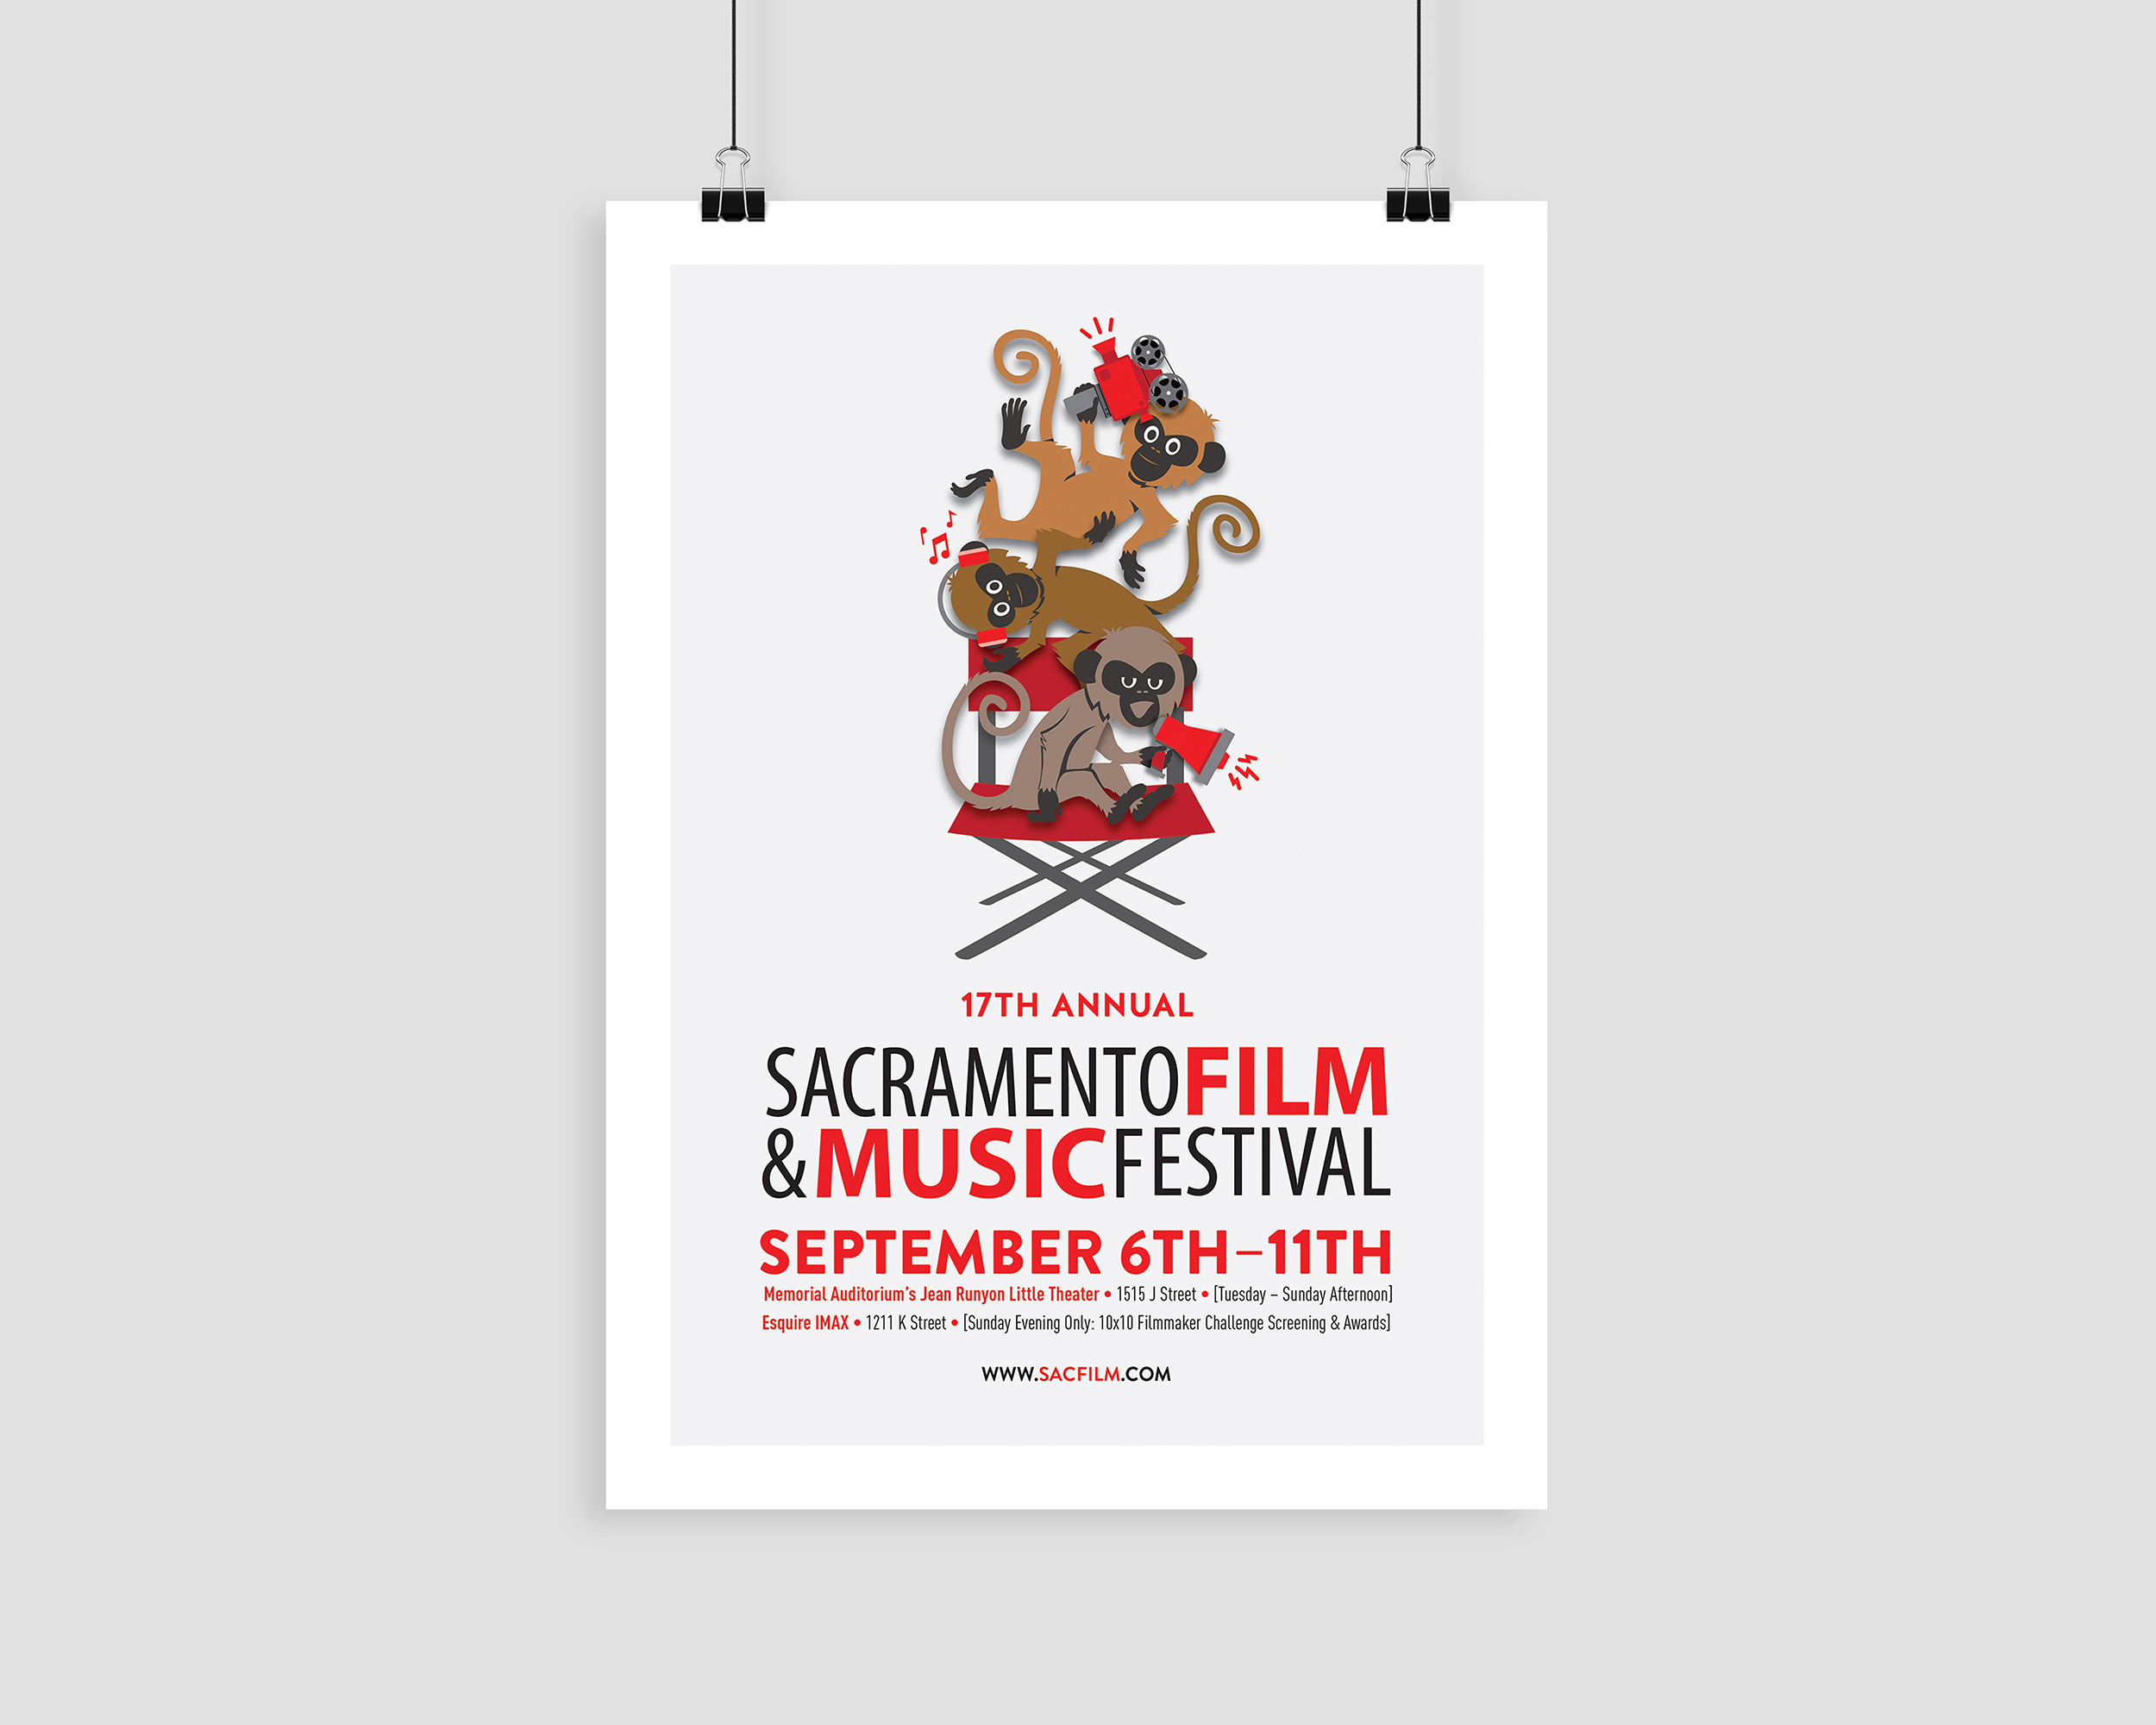 17th Annual Sacramento Film & Music Festival